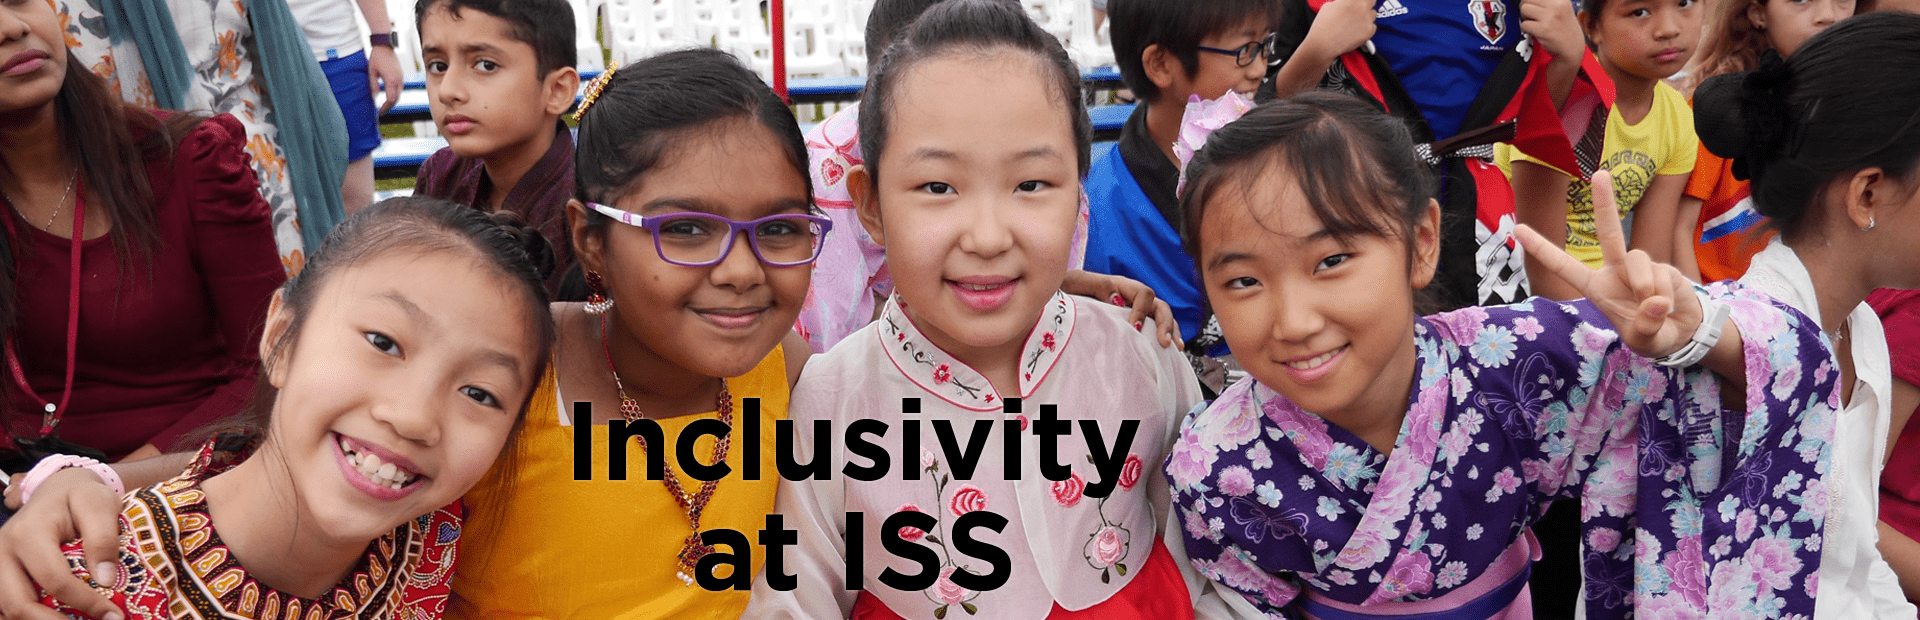 inclusivity-at-iss